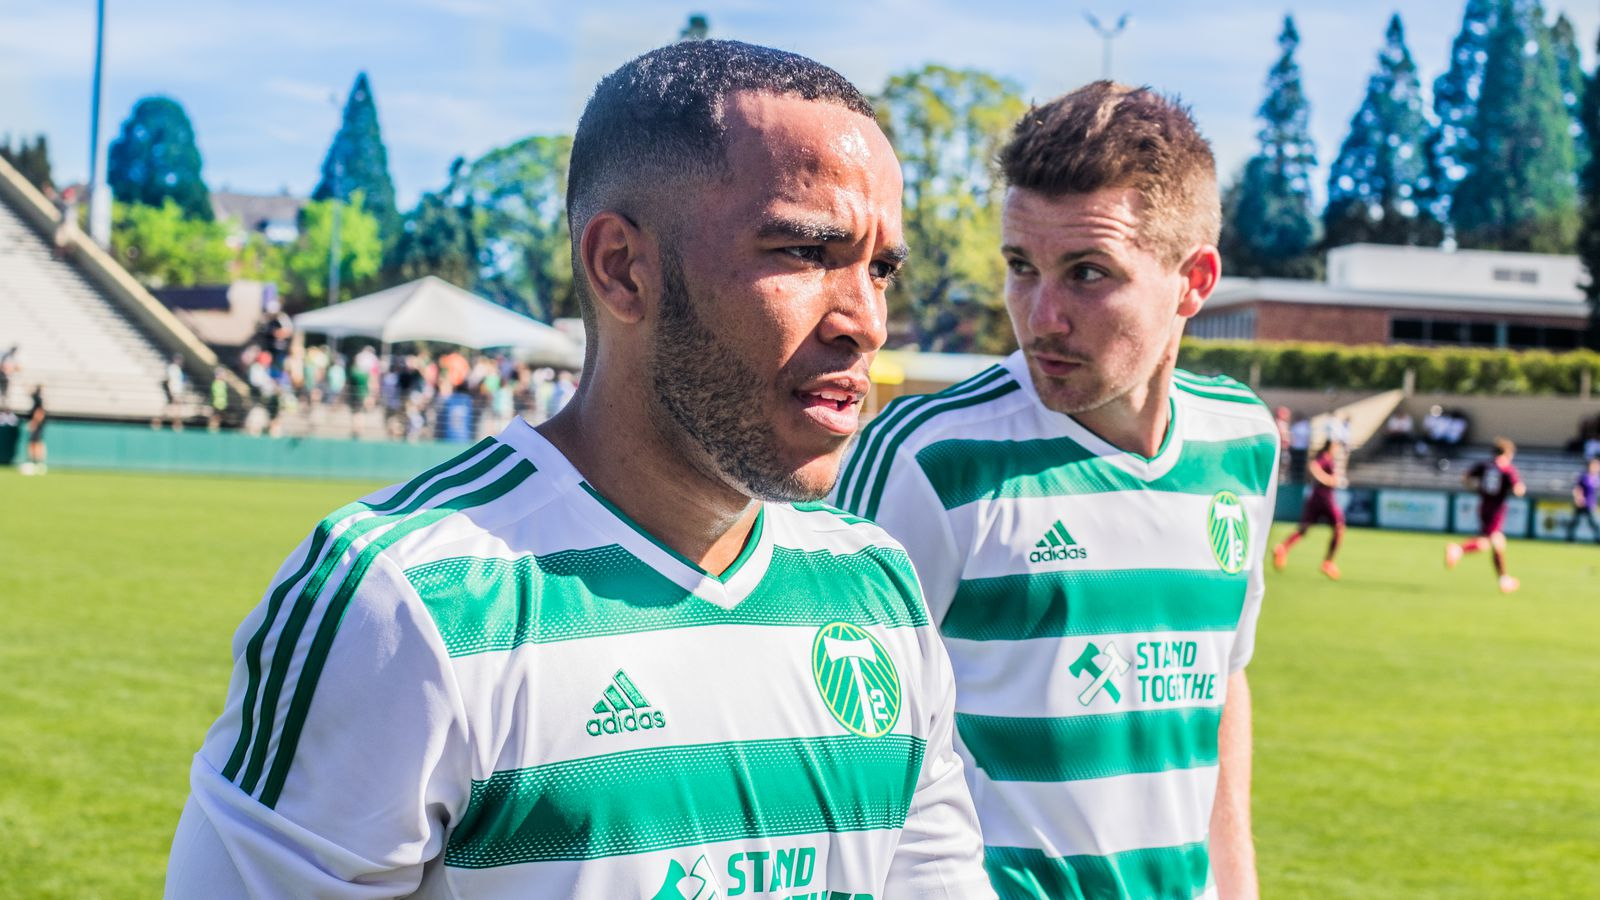 Polk-portland-timbers-red-city-images.jpg__1_of_1_-2.0.0